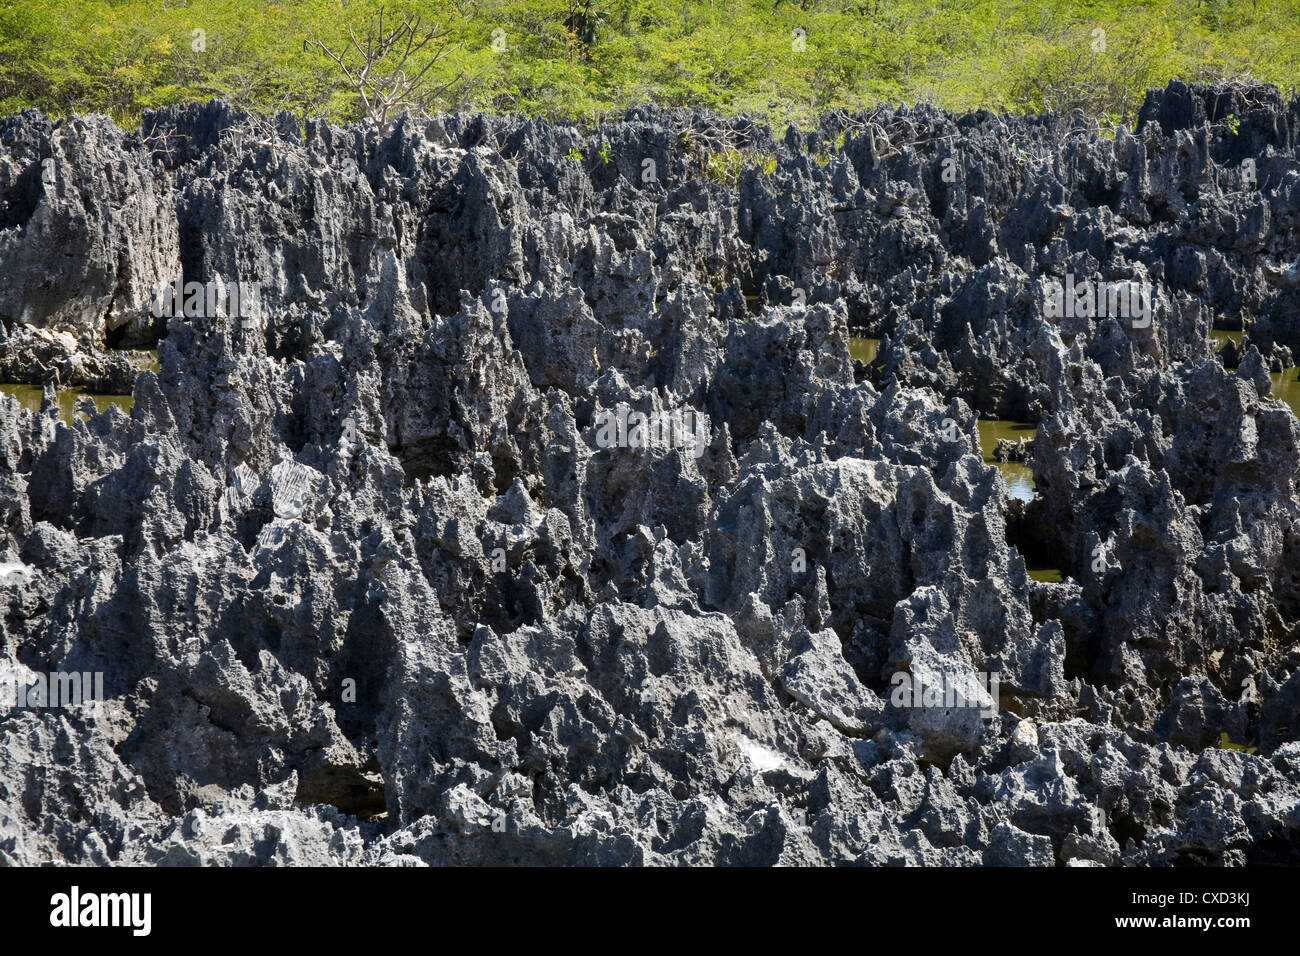 Rock Formations in Hell, Grand Cayman, Cayman Islands, Greater Antilles, West Indies, Caribbean, Central America - Stock Image